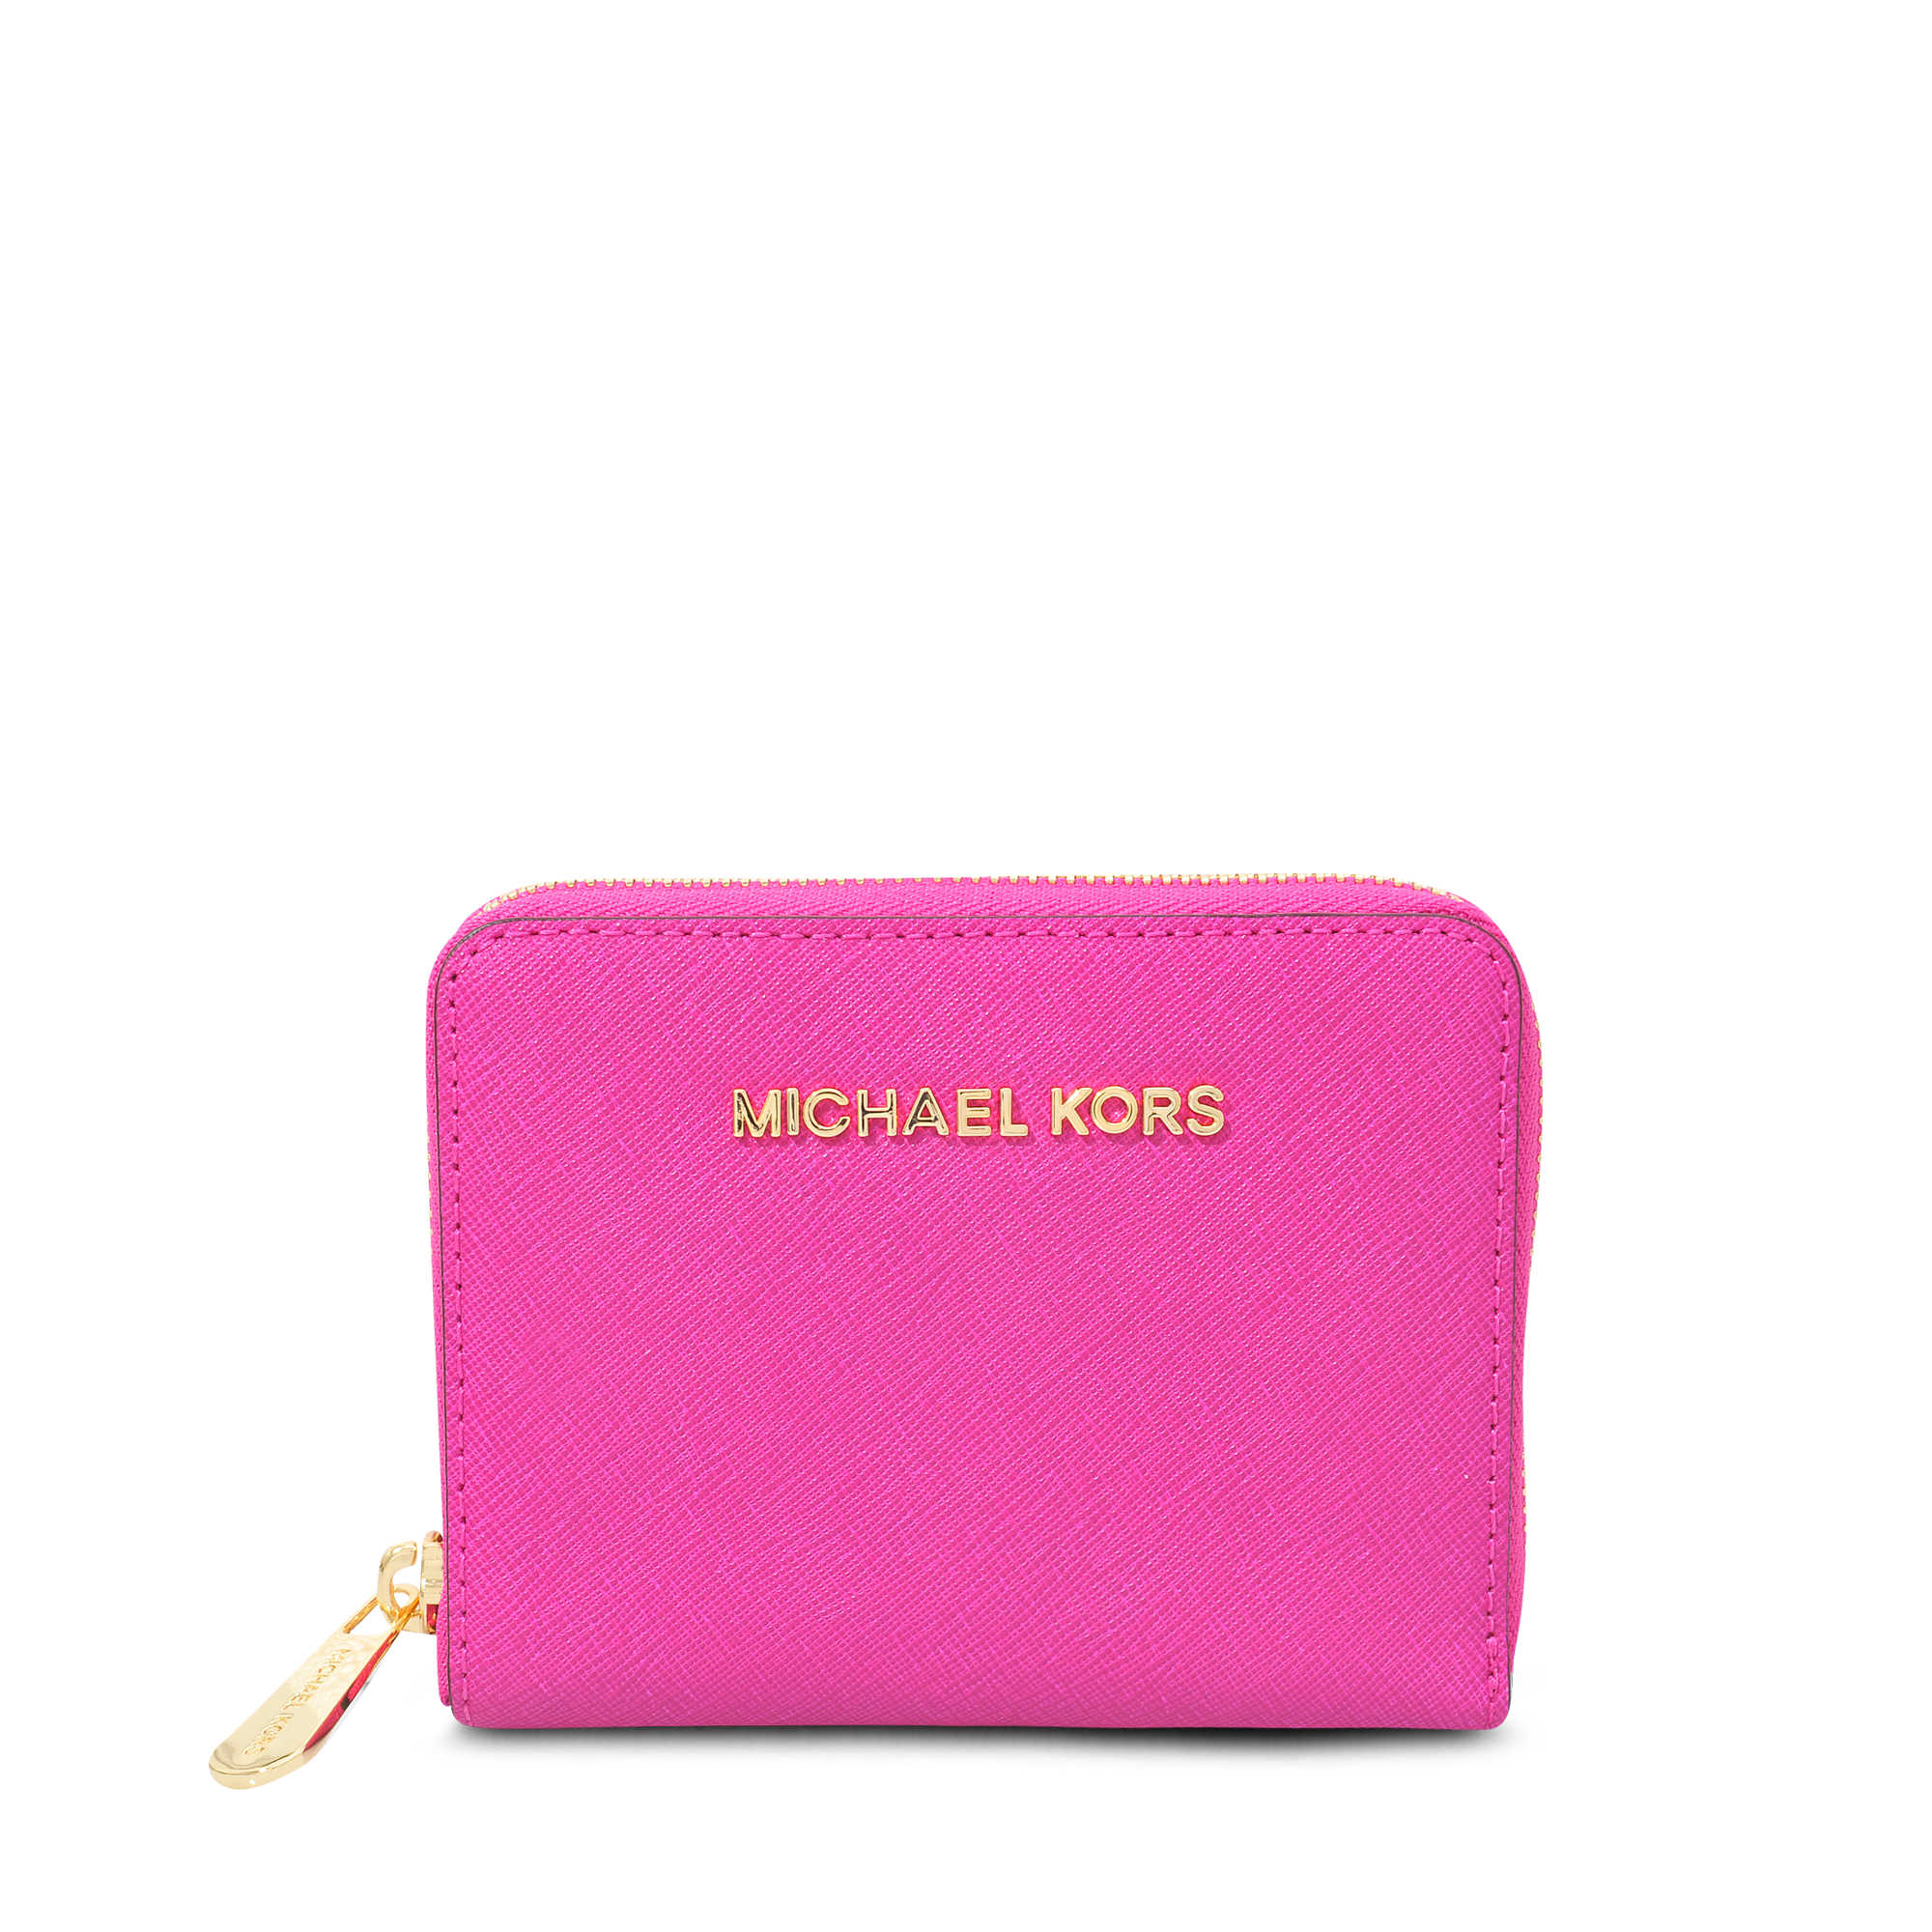 20740b08d92d Michael Kors Hot Pink Wallets | Stanford Center for Opportunity ...